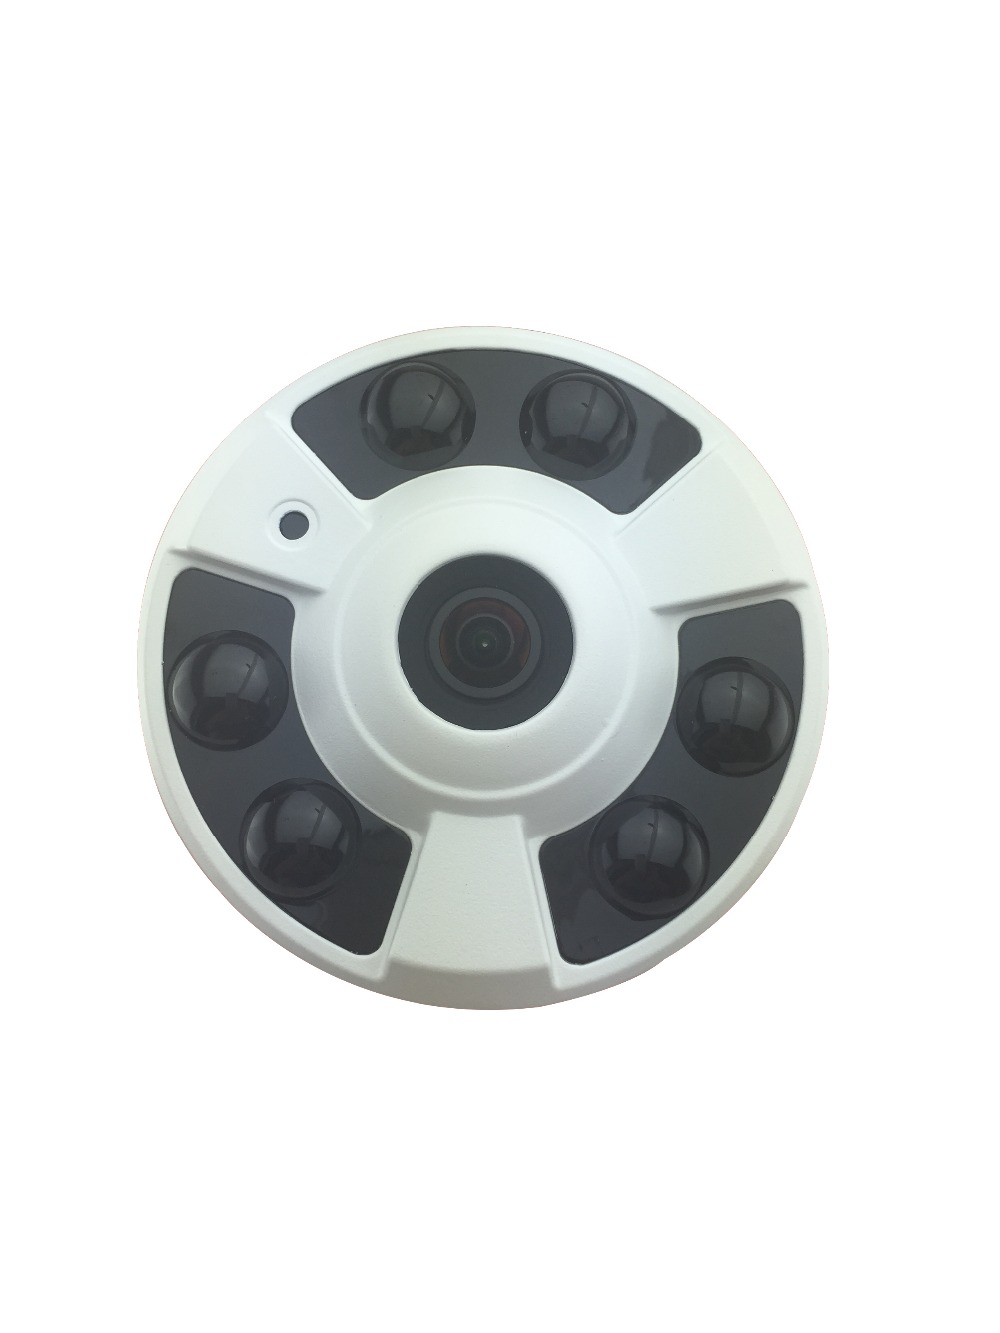 Fisheye 180 Degree 960P HD IP Camera Indoor Security P2P Network IR Wide Angle<br><br>Aliexpress